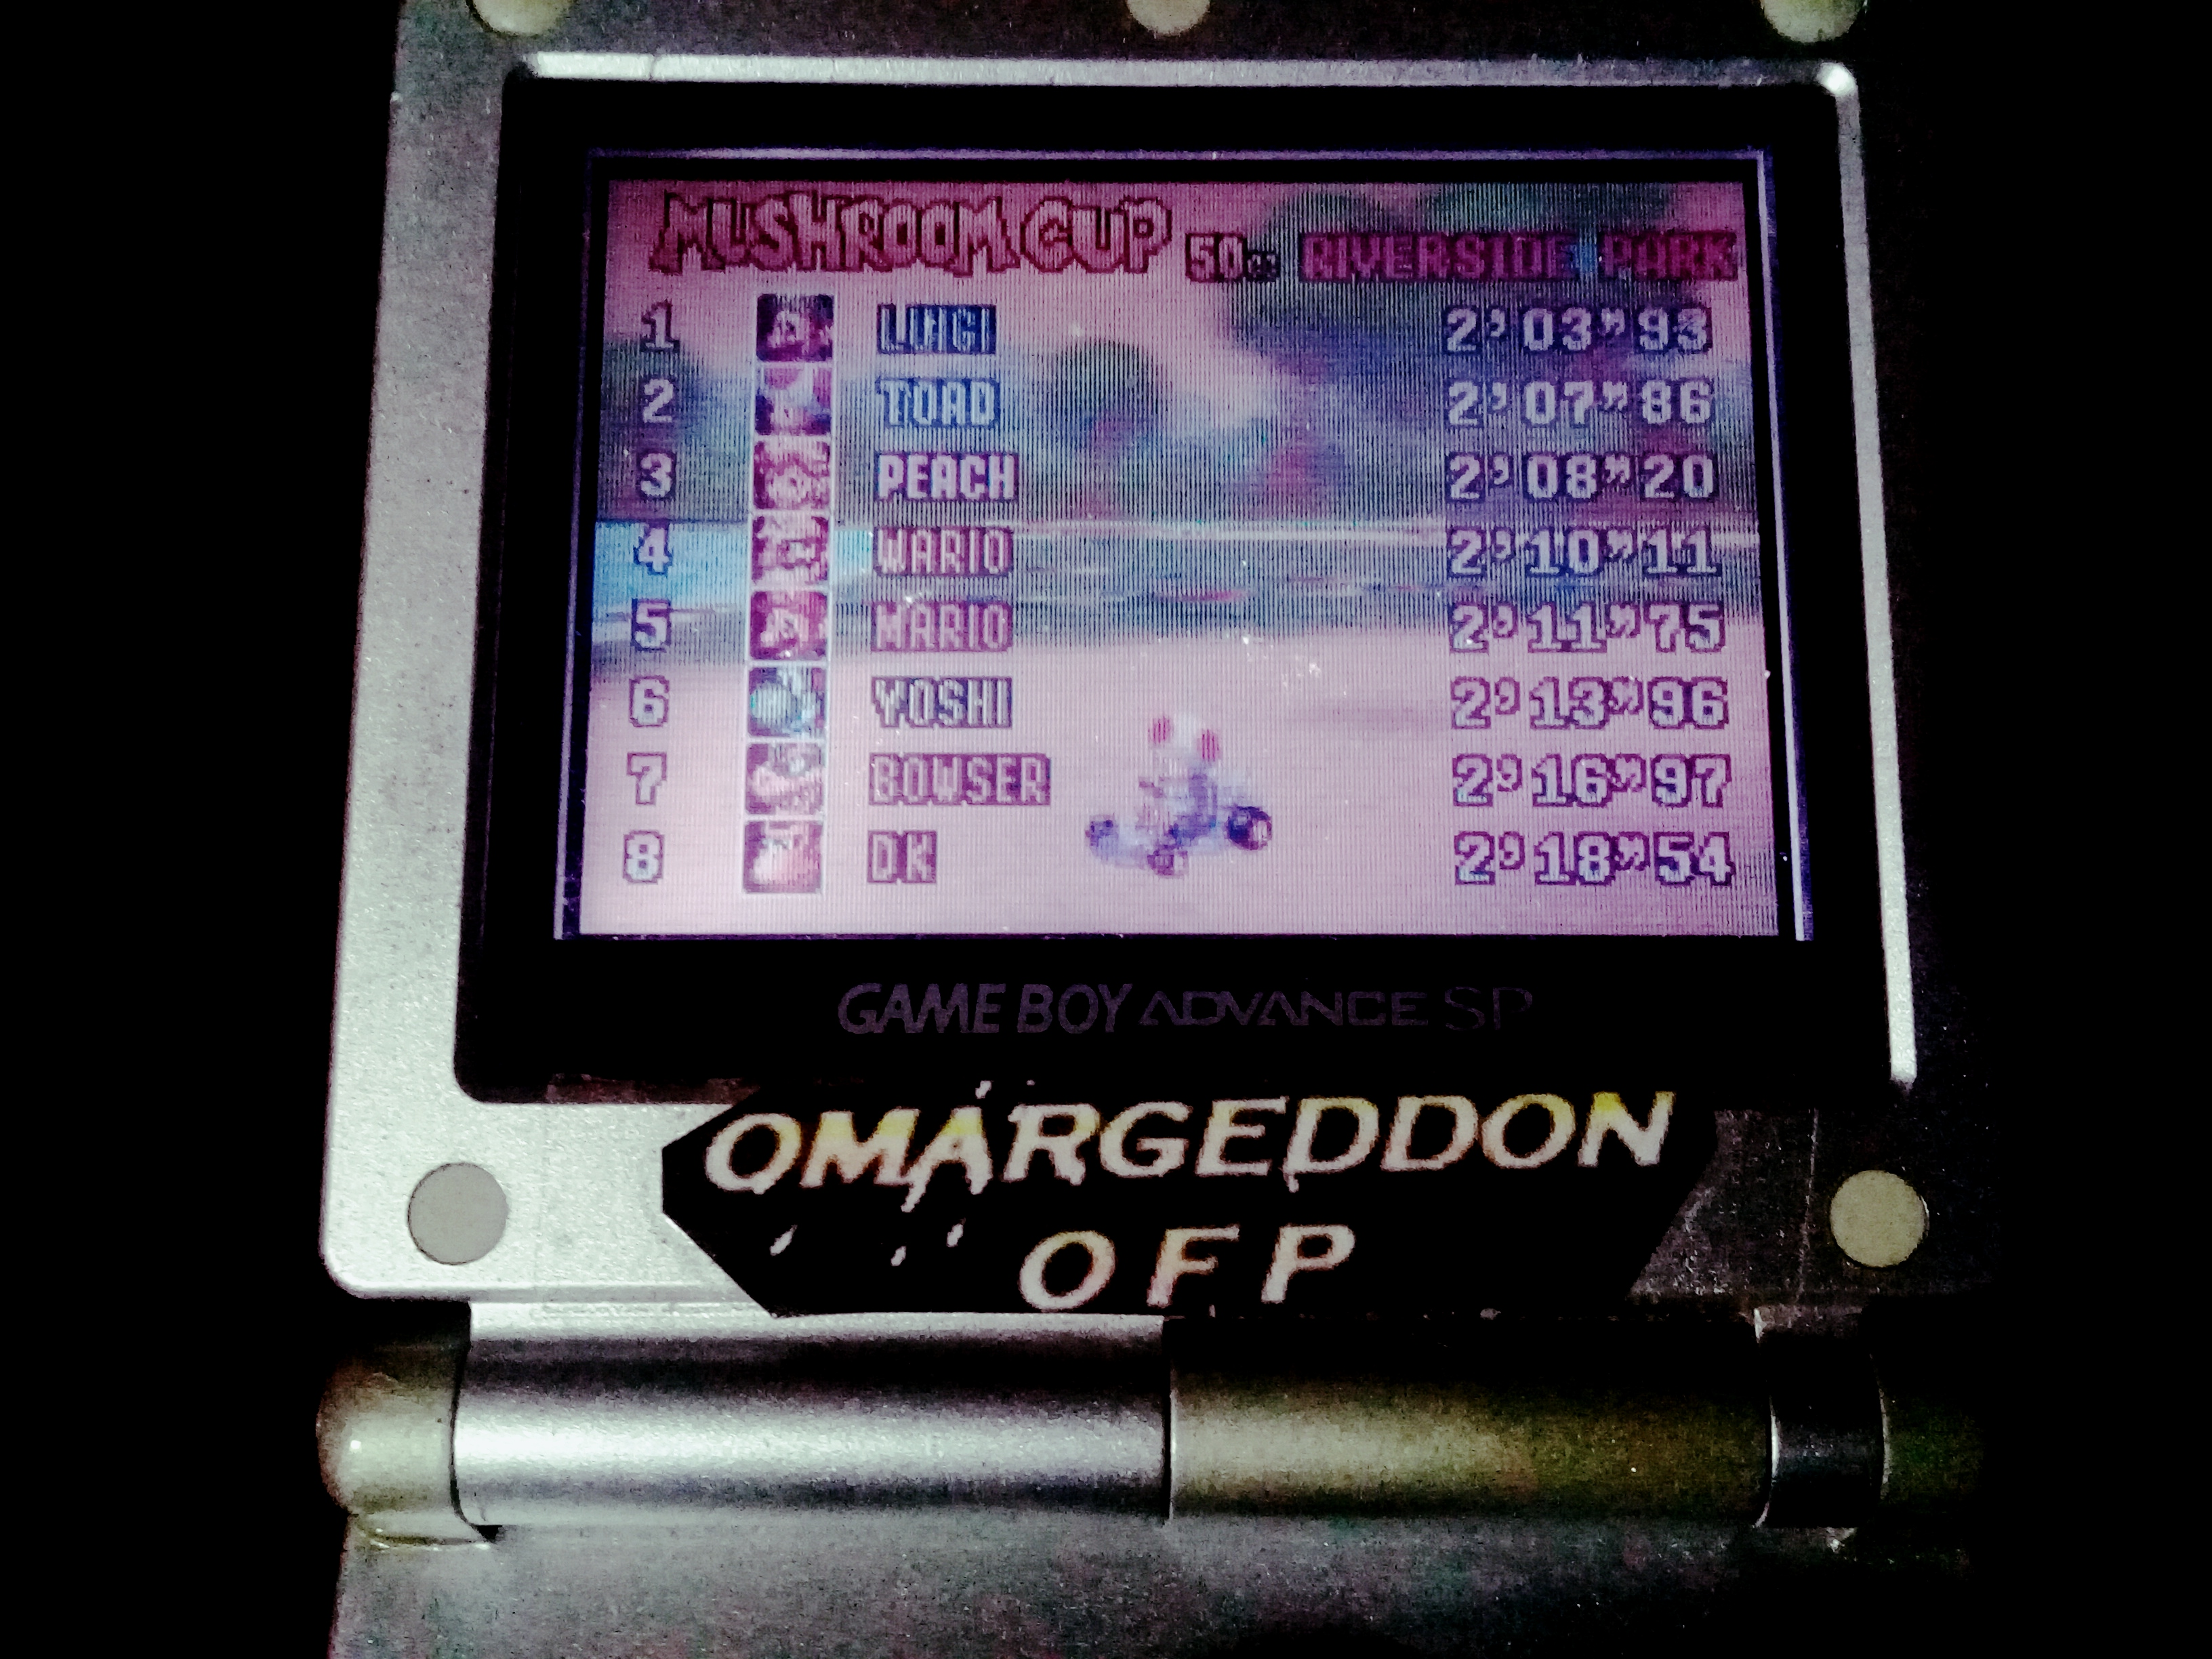 omargeddon: Mario Kart Super Circuit: Riverside Park [50cc] (GBA) 0:02:07.86 points on 2019-12-14 21:06:26